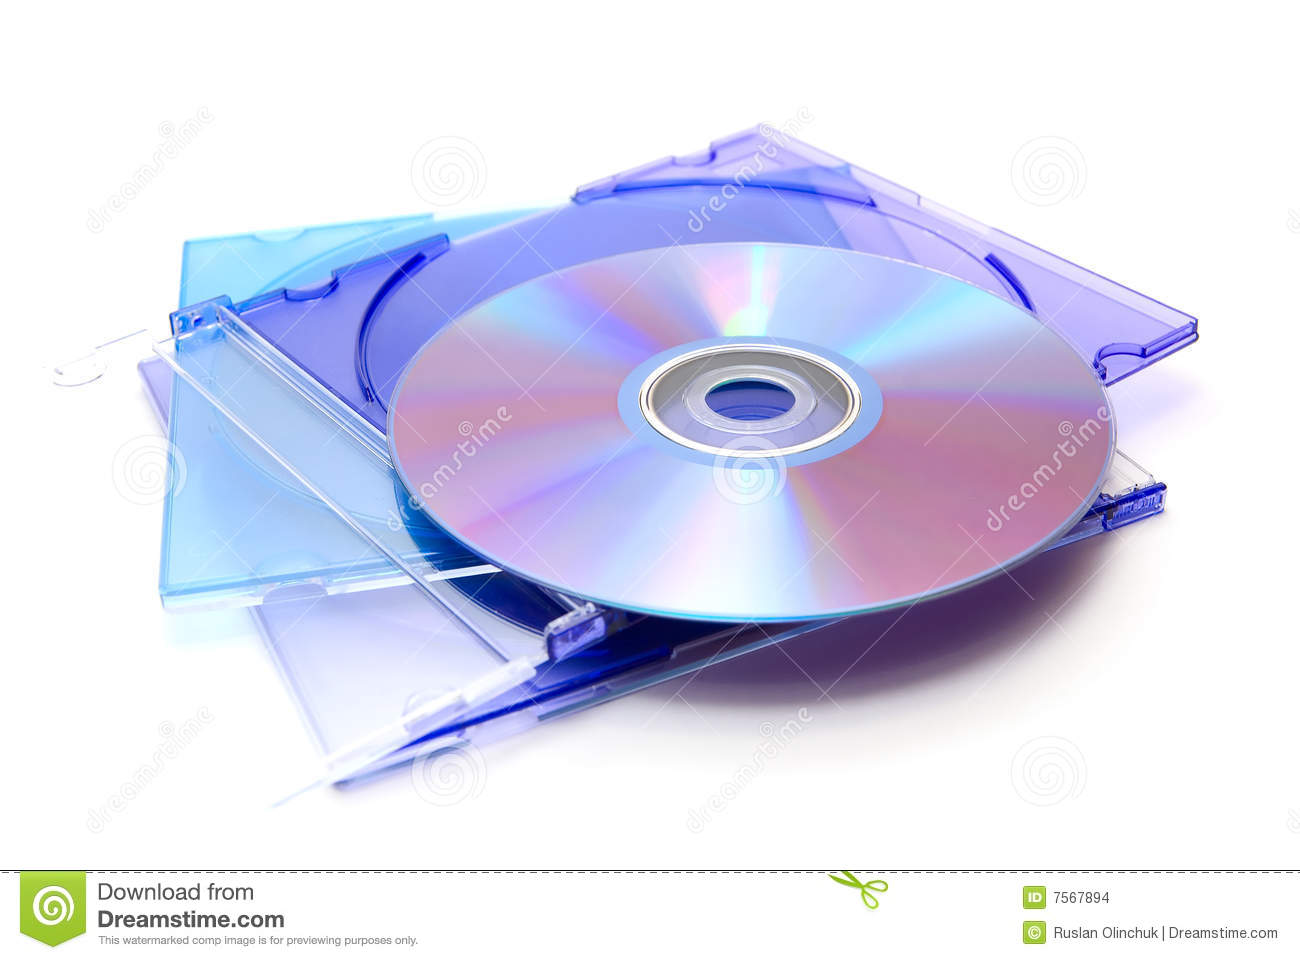 Cd and dvd disks